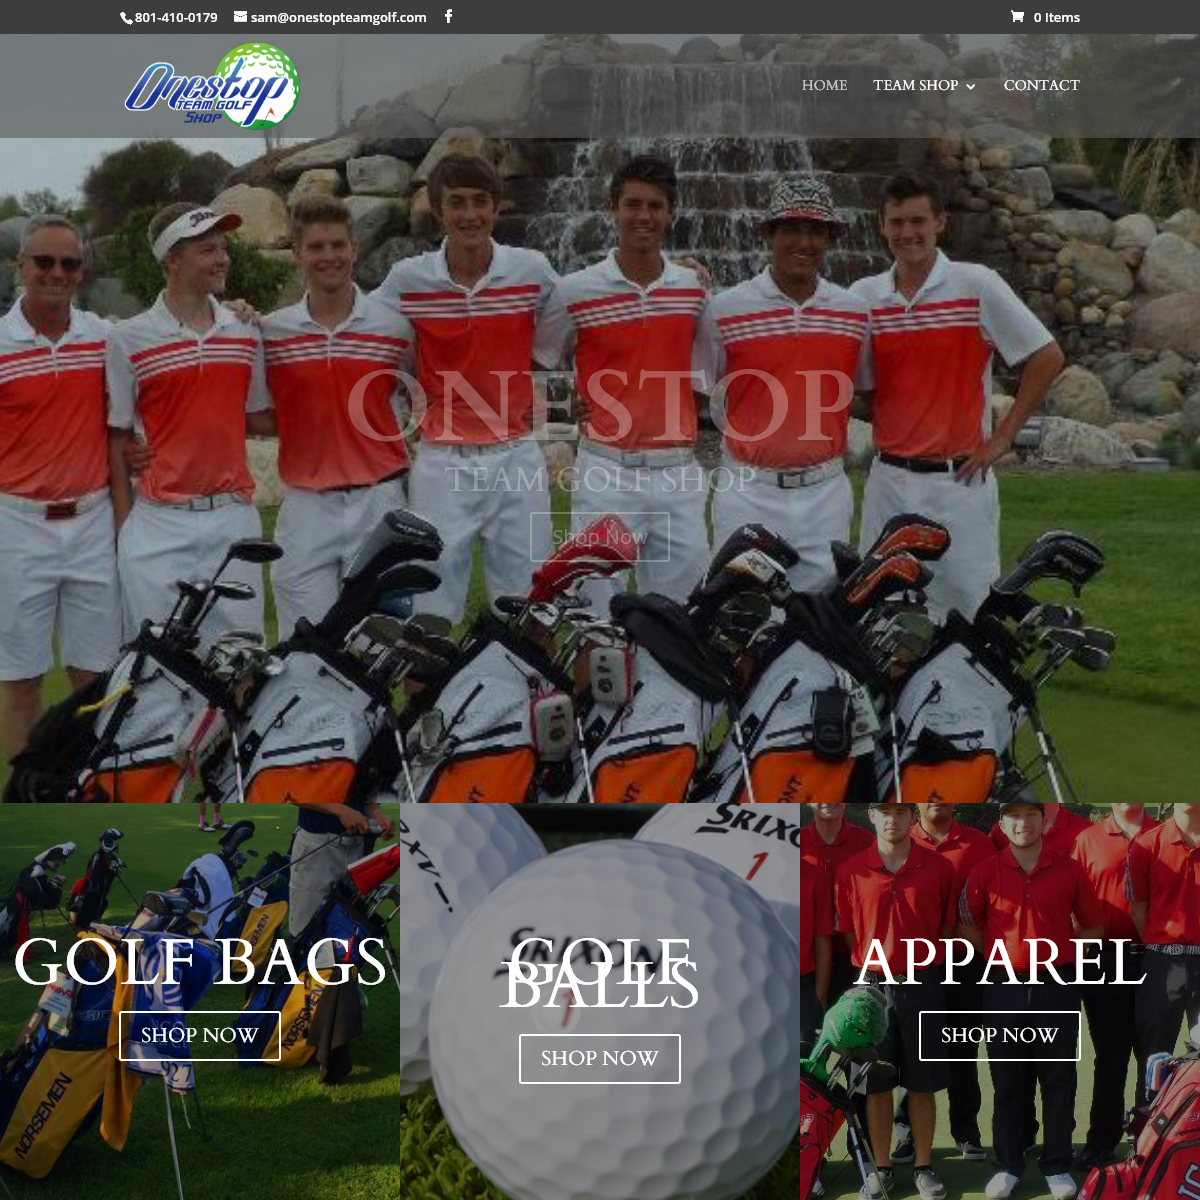 One Stop Team Golf Shop - Golf Bags, Balls, Apparel, Hats and more